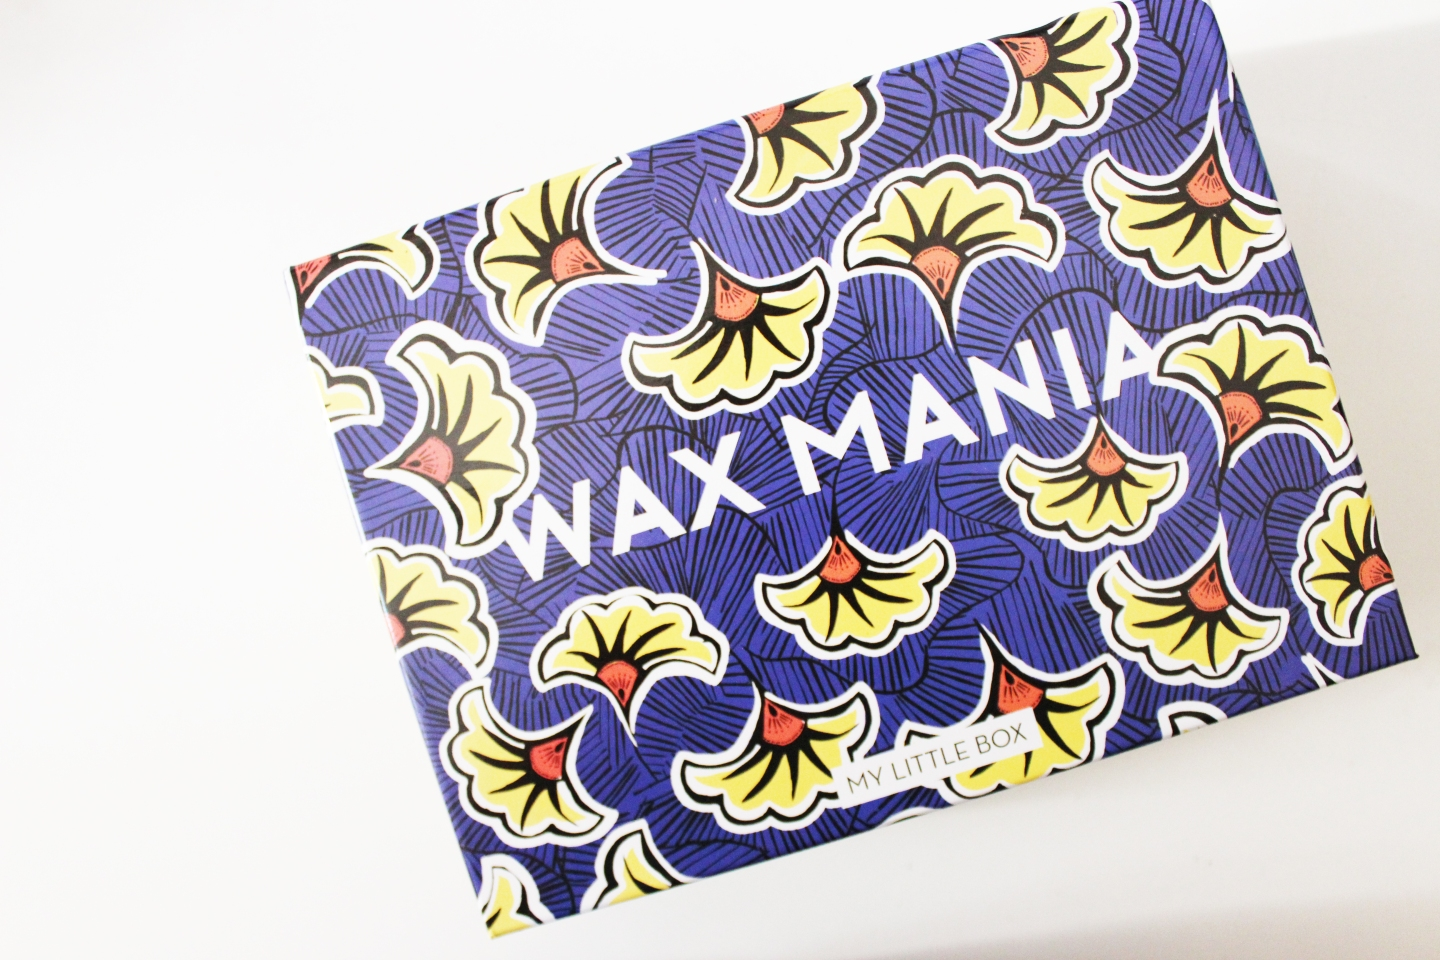 My-little-wax-box-001